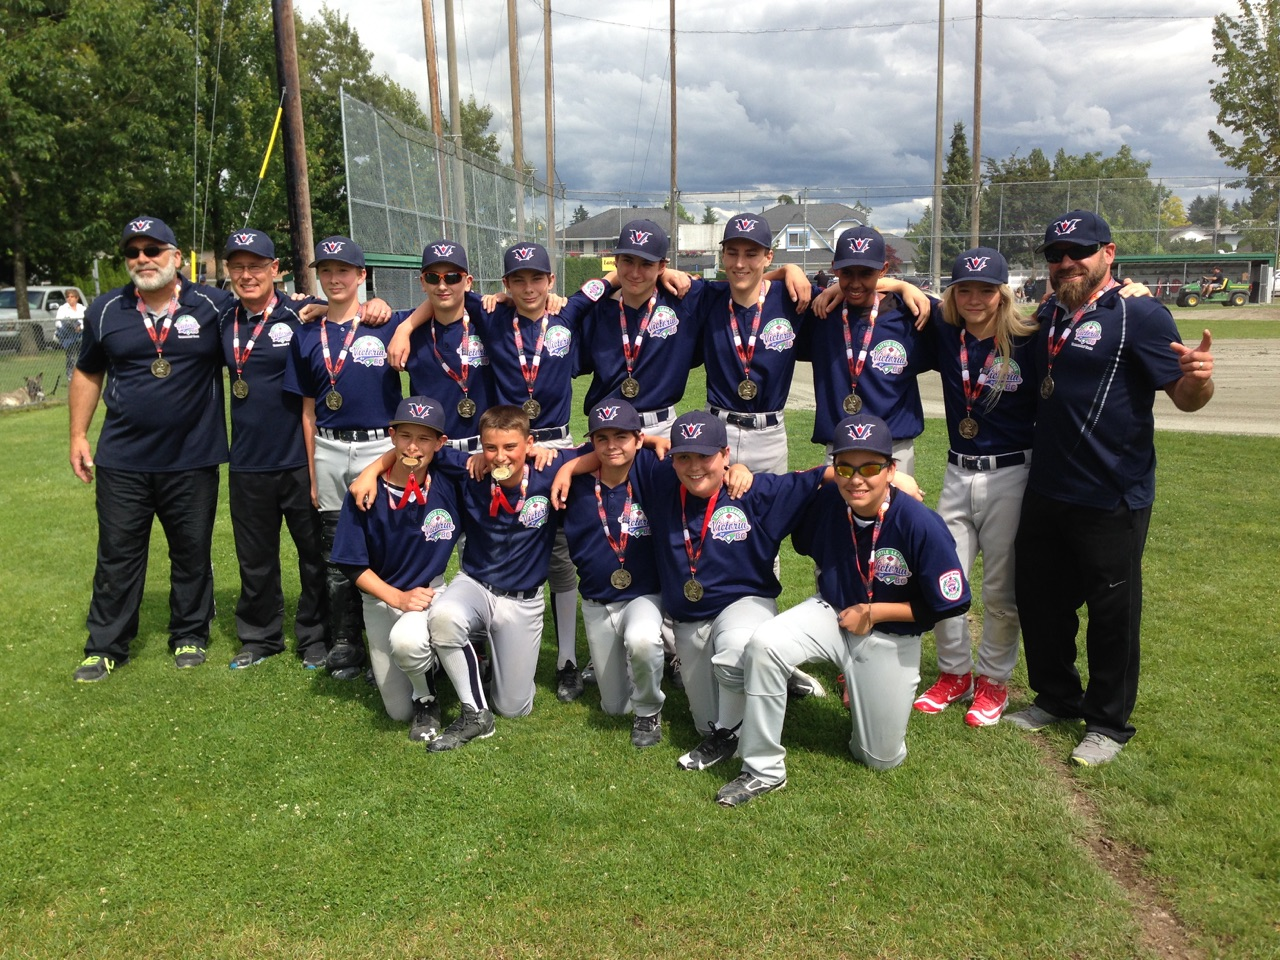 Intermediate team wins at Provincials..off to Canadians! Almost missed it.